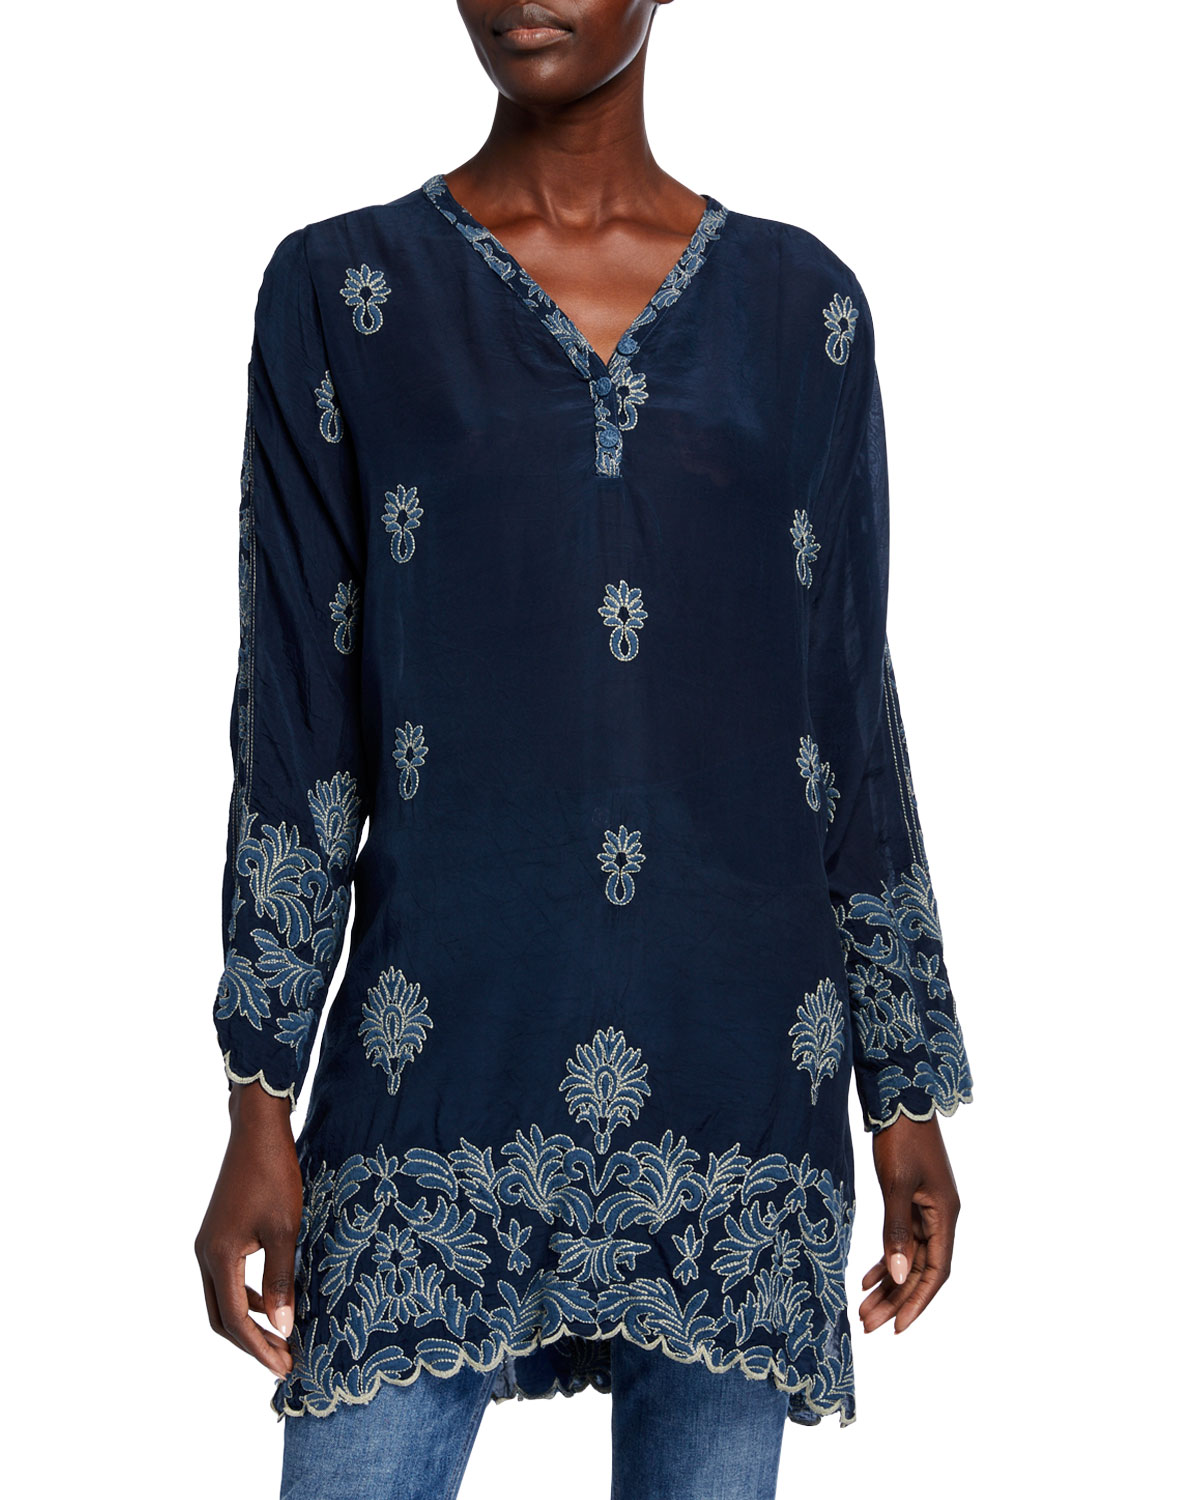 Johnny Was Tops ALEX BUTTON-NECK LONG-SLEEVE TONAL EMBROIDERED TUNIC